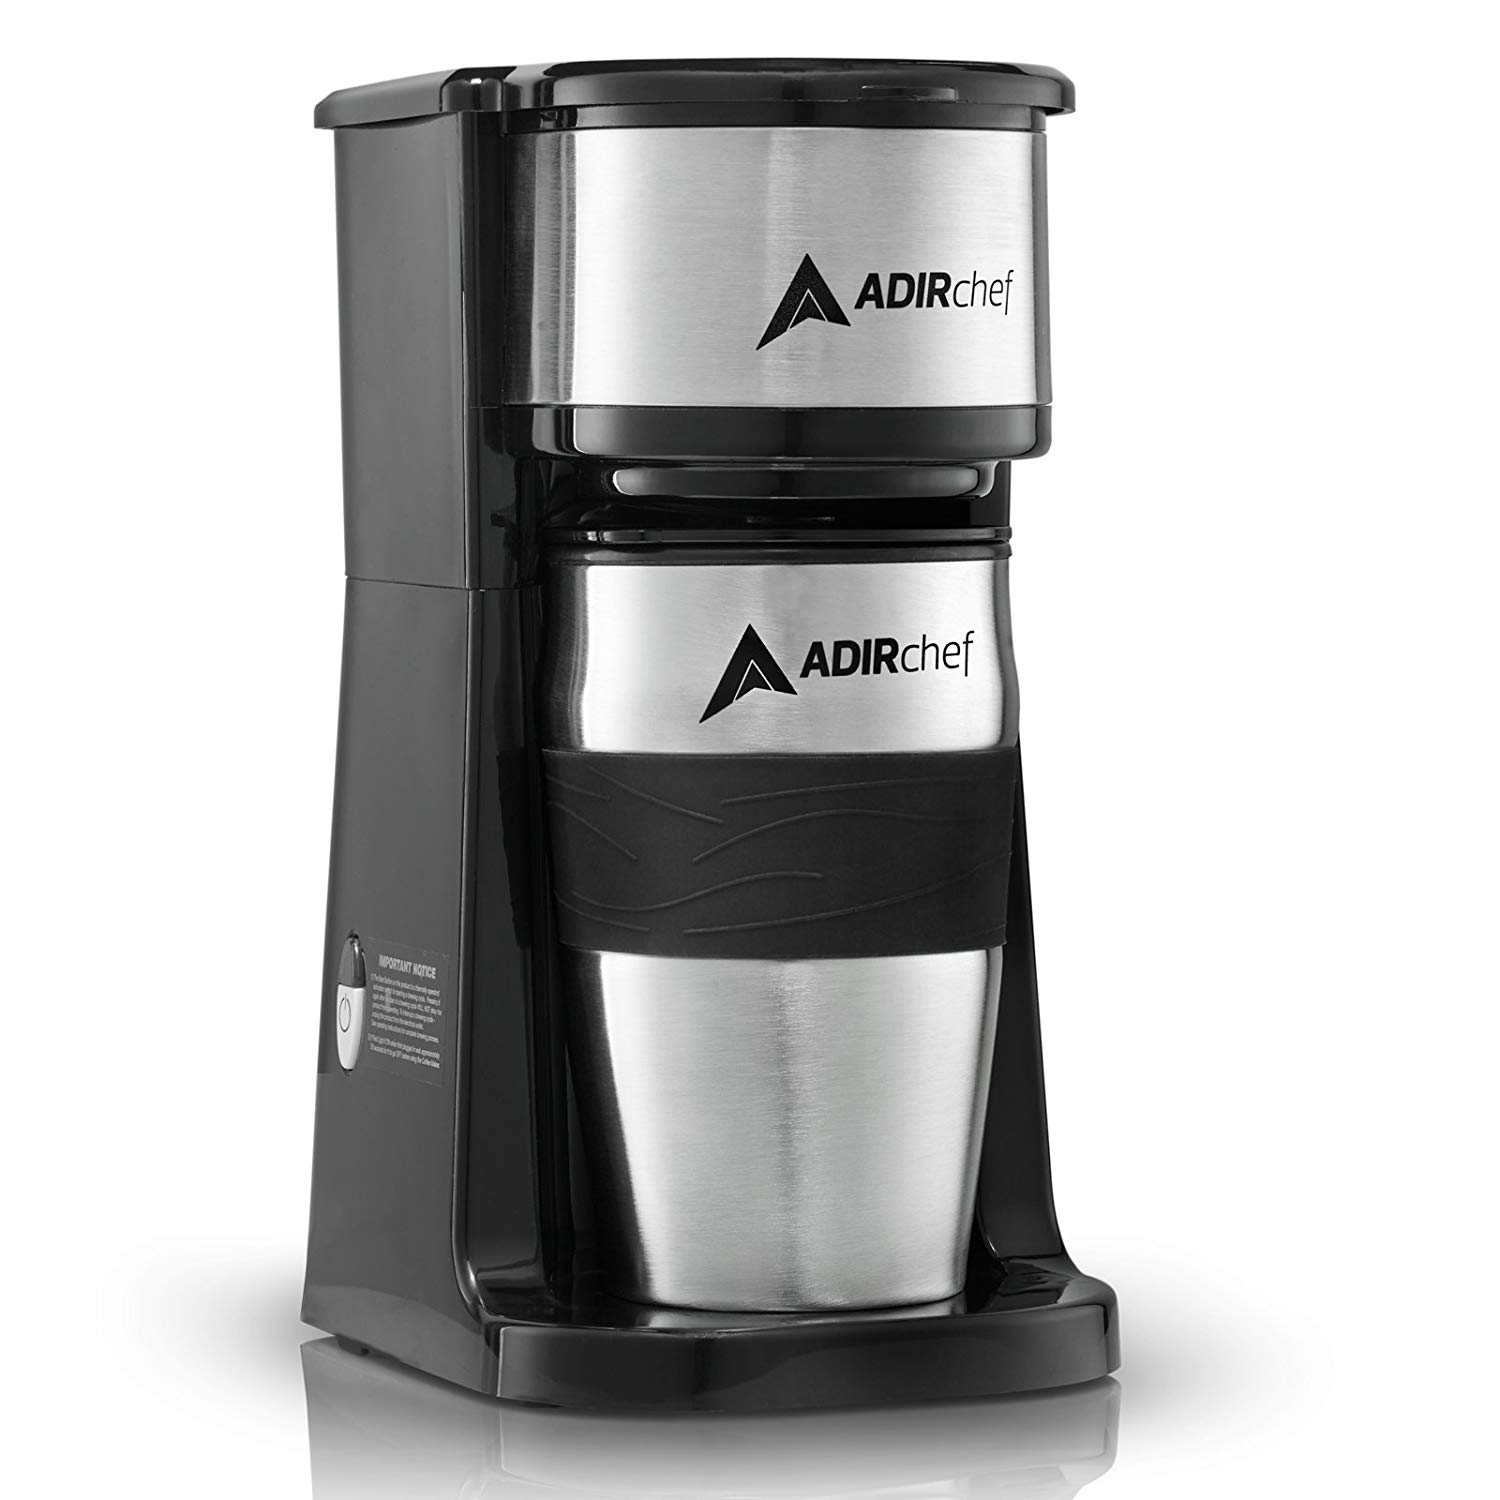 AdirChef Grab N' Go Personal Coffee Maker with Travel Mug